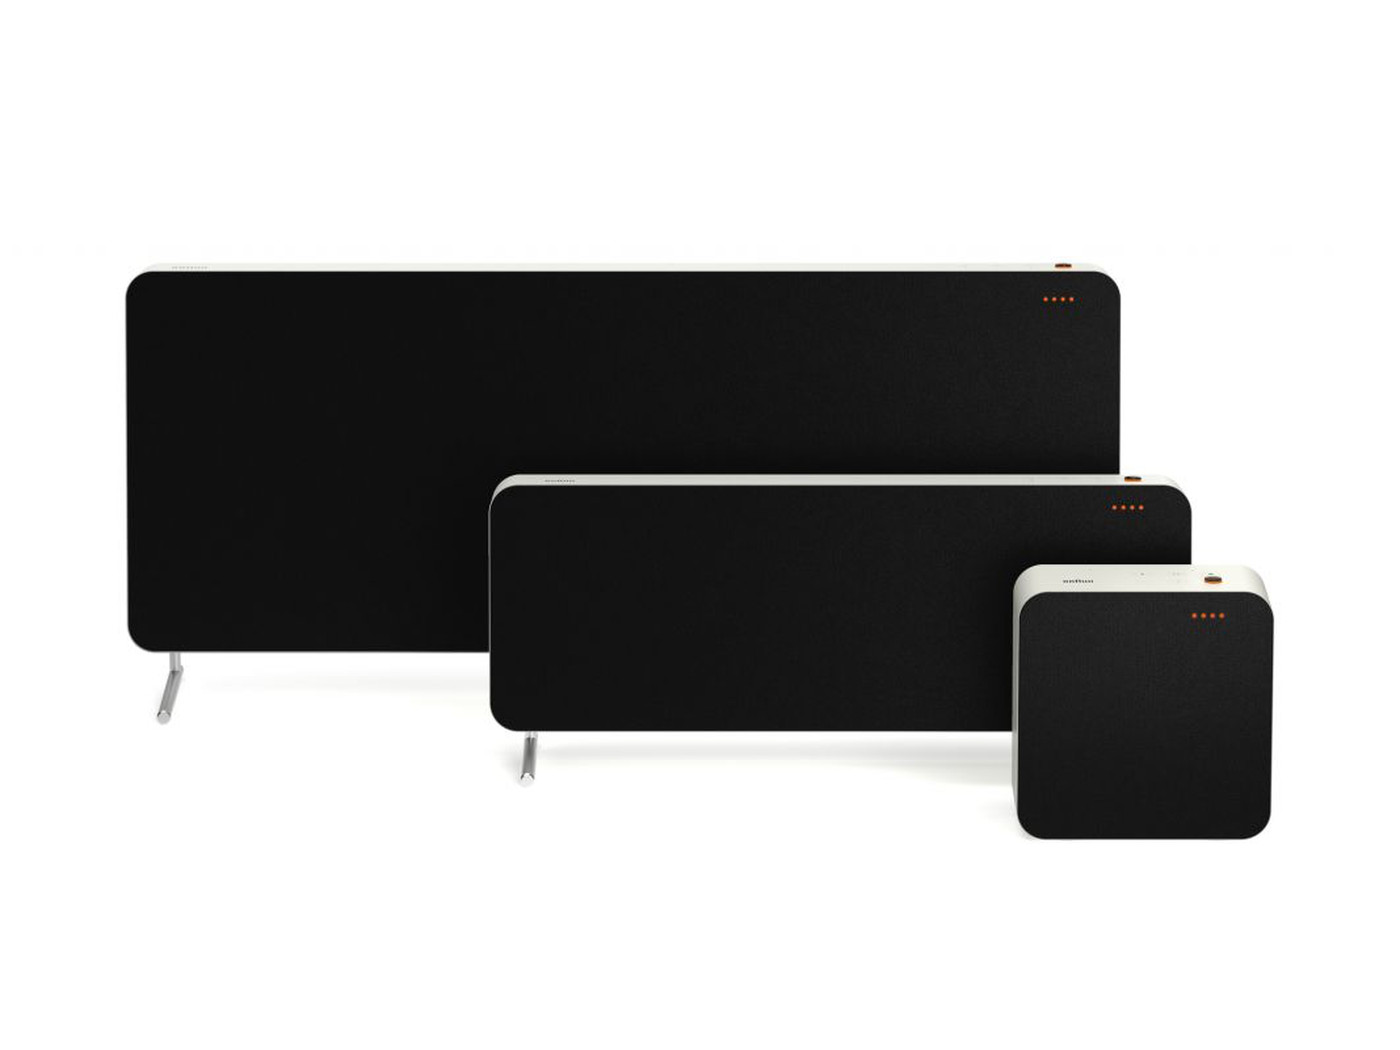 Three black speakers lined up in a row. The smallest is a square speaker on the right, while the other two sit behind it with spindle legs.